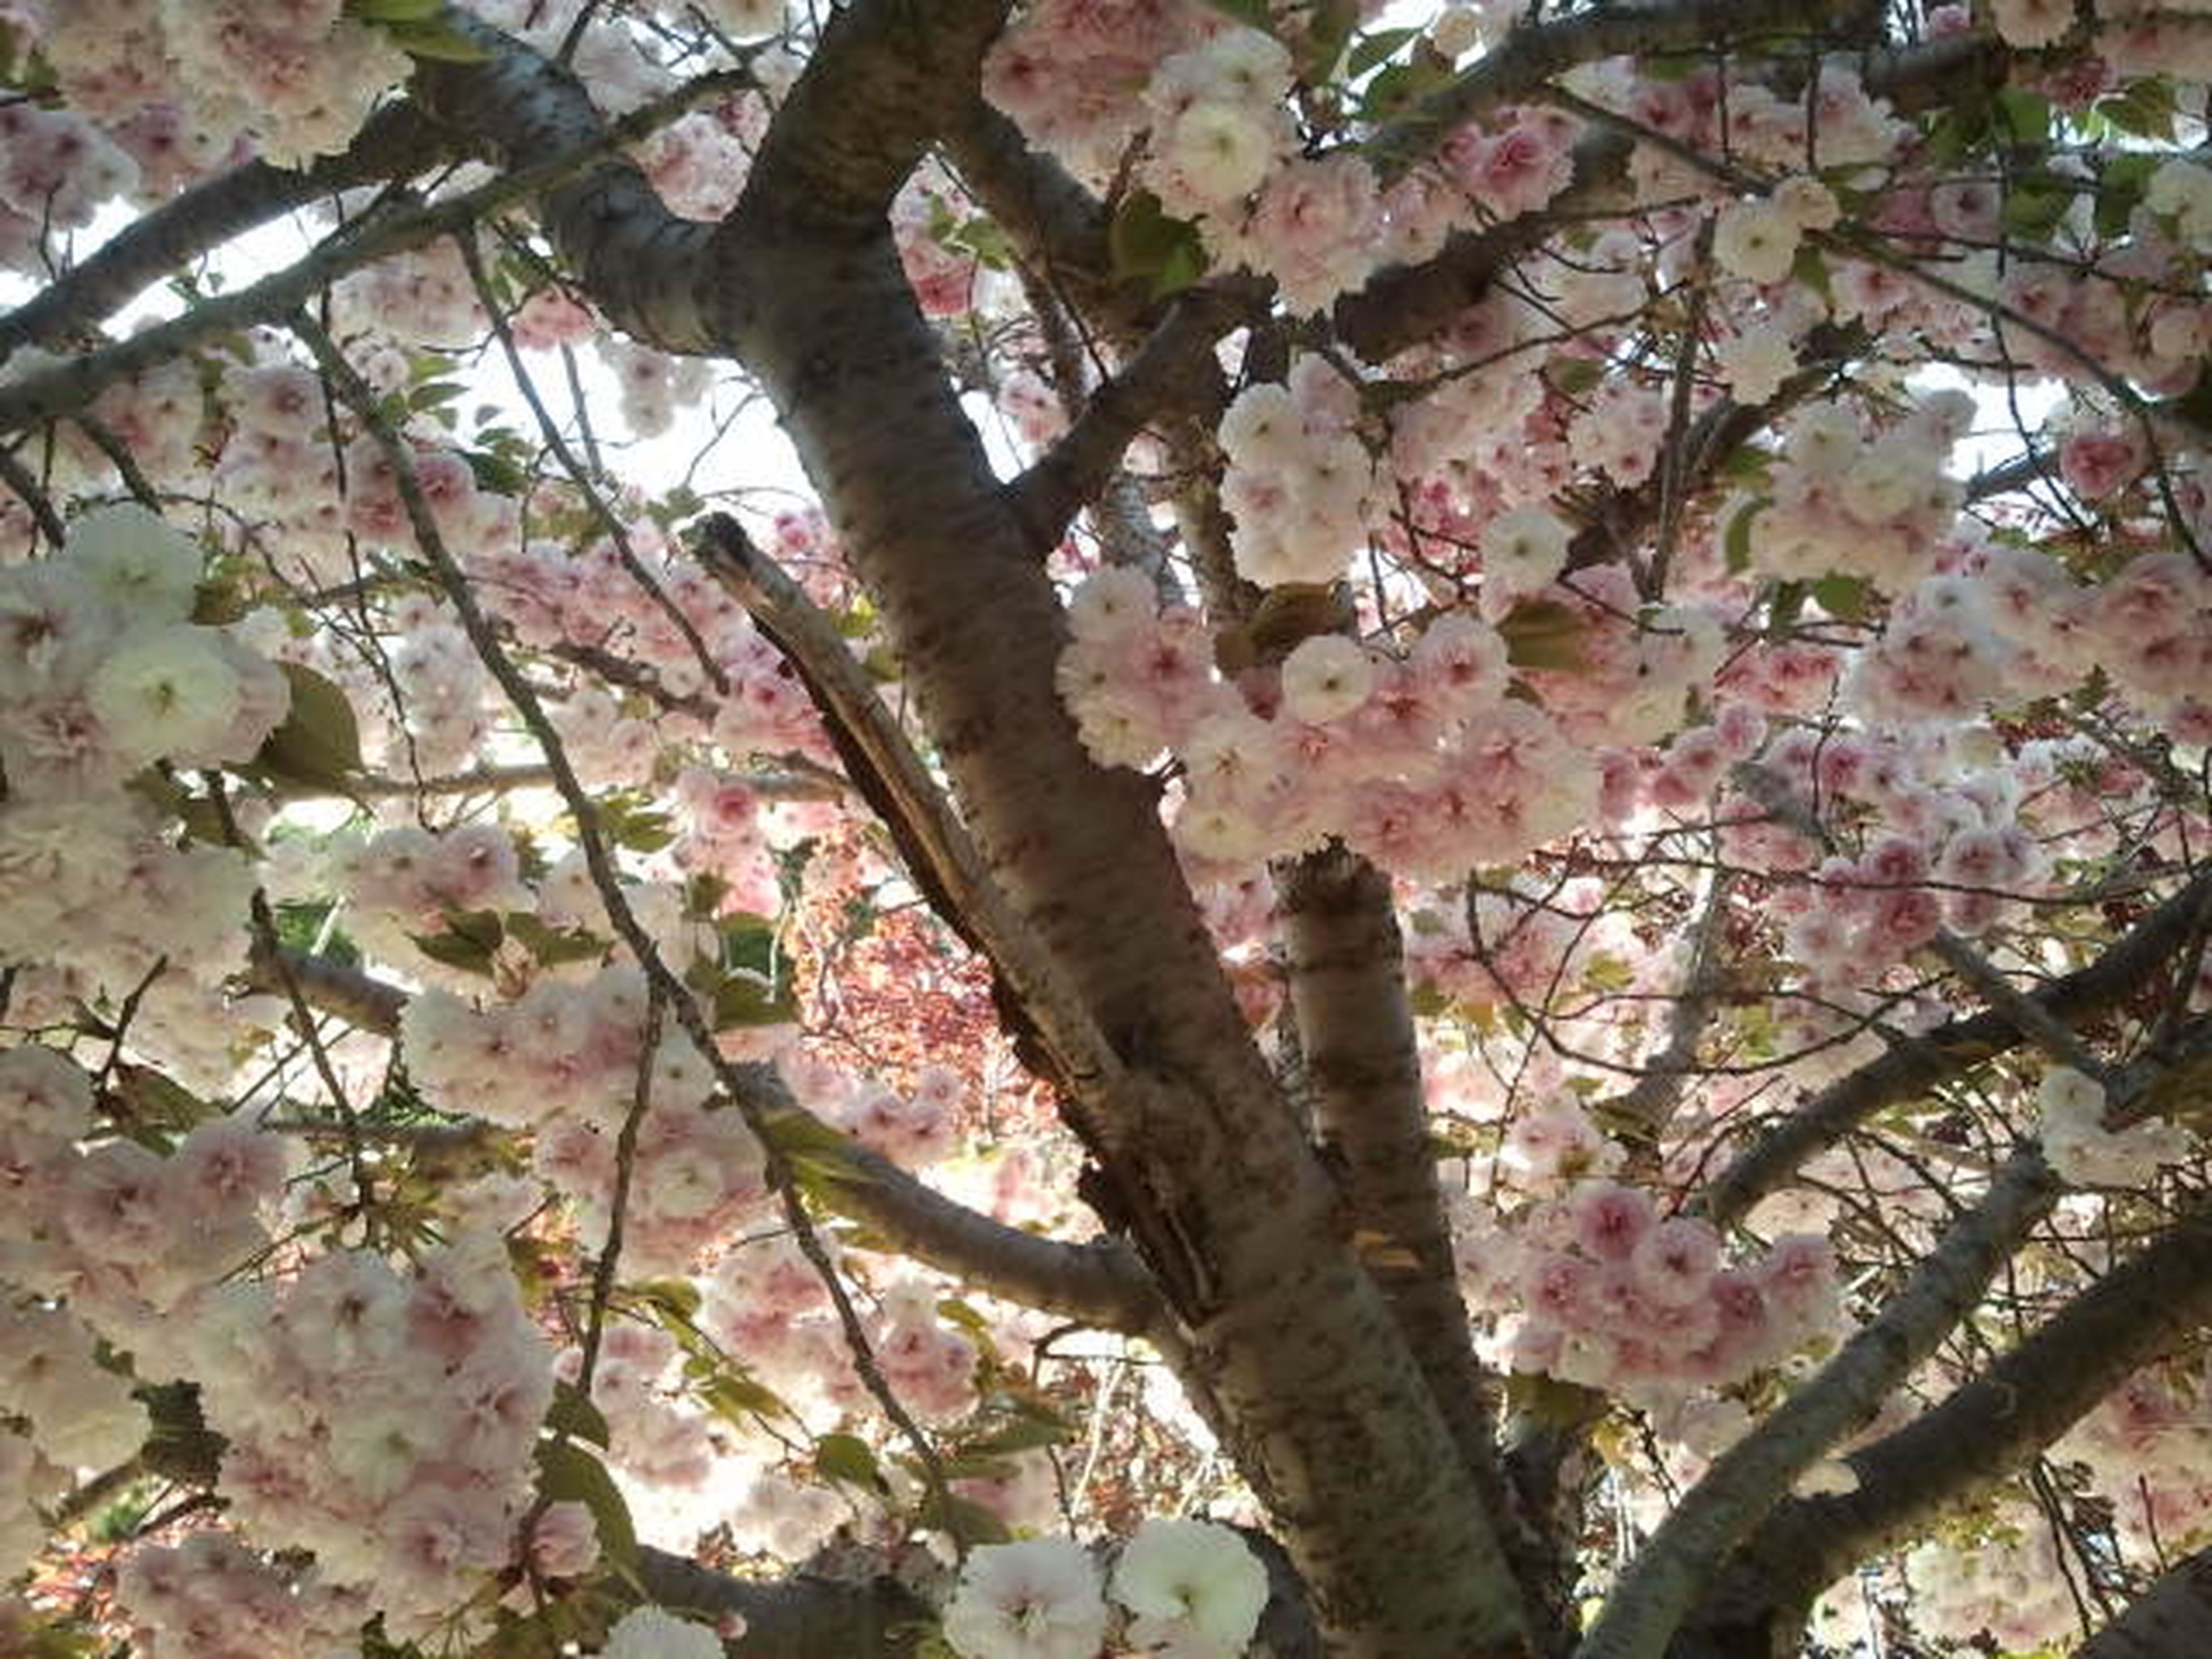 branch, flower, tree, freshness, growth, low angle view, cherry blossom, blossom, cherry tree, beauty in nature, fragility, pink color, nature, springtime, fruit tree, in bloom, twig, blooming, day, outdoors